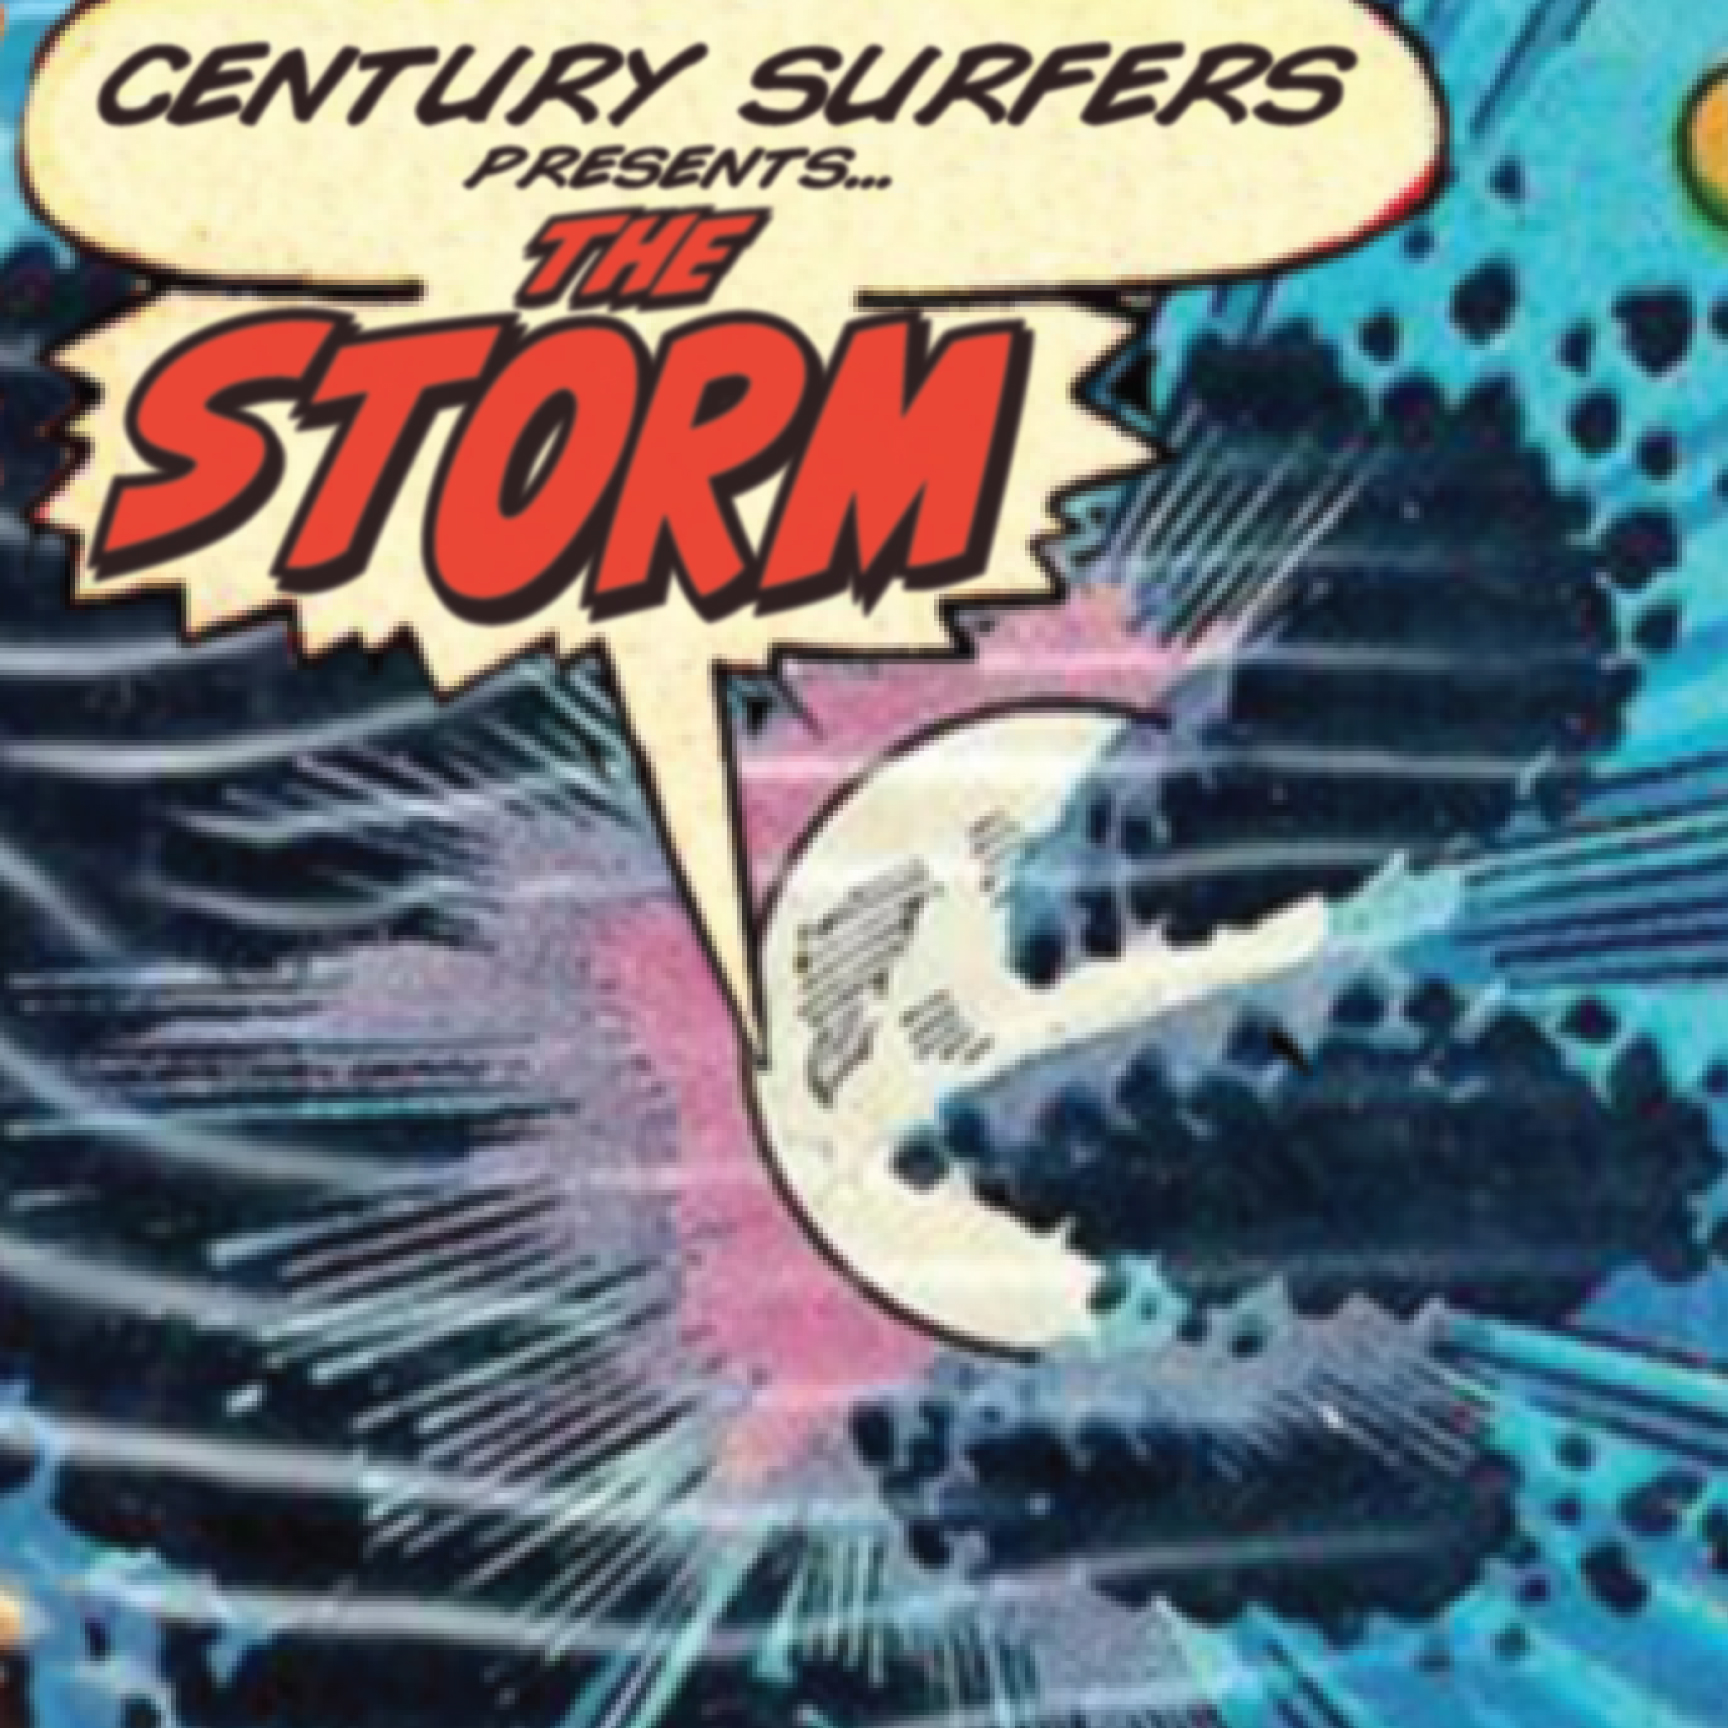 Century Surfers Presents The Storm